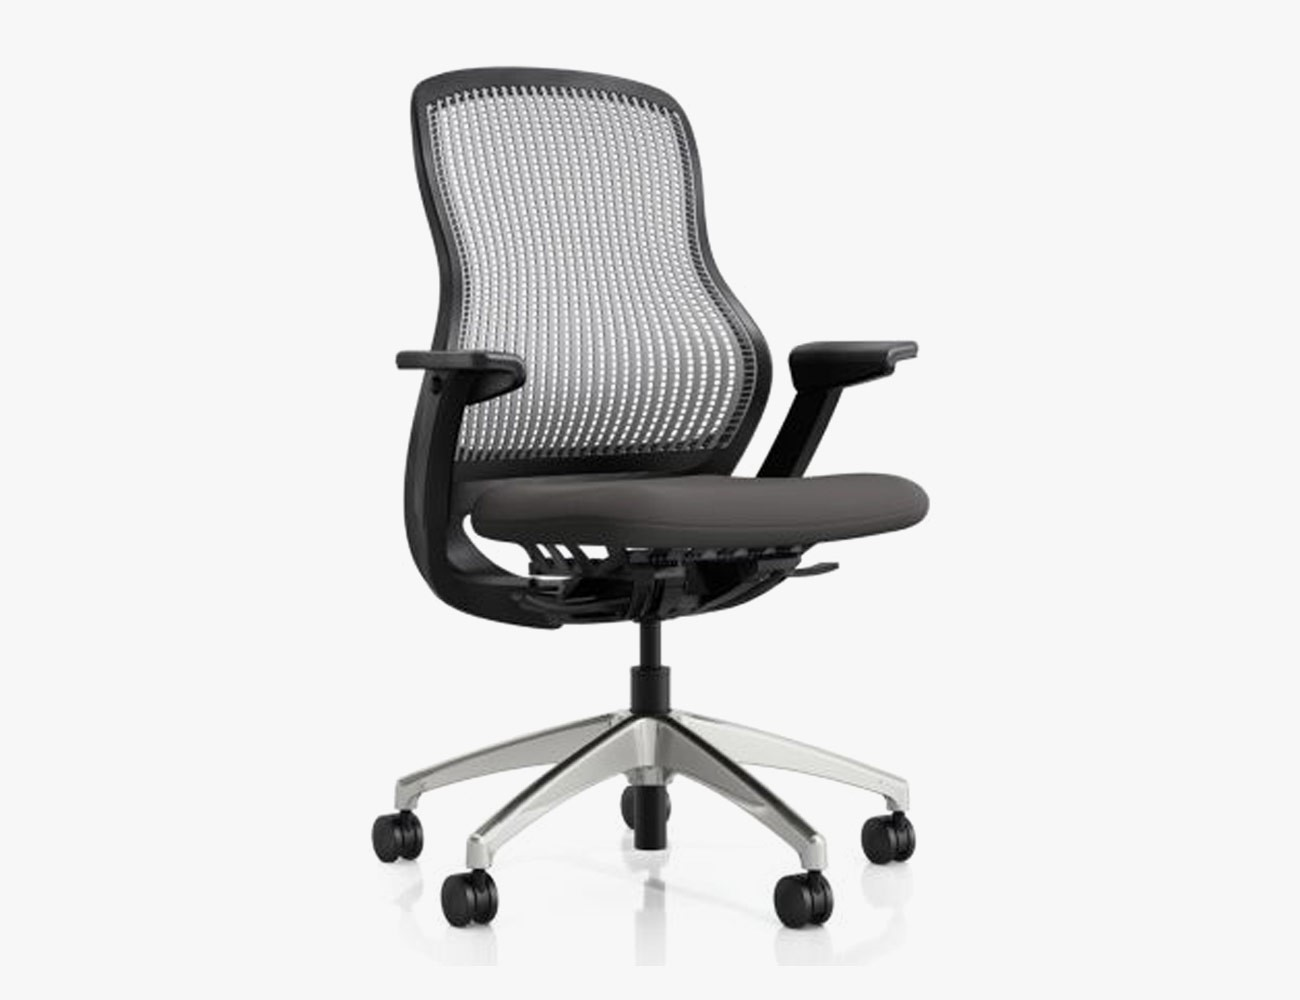 3 Best Places To Buy An Ergonomic Chair